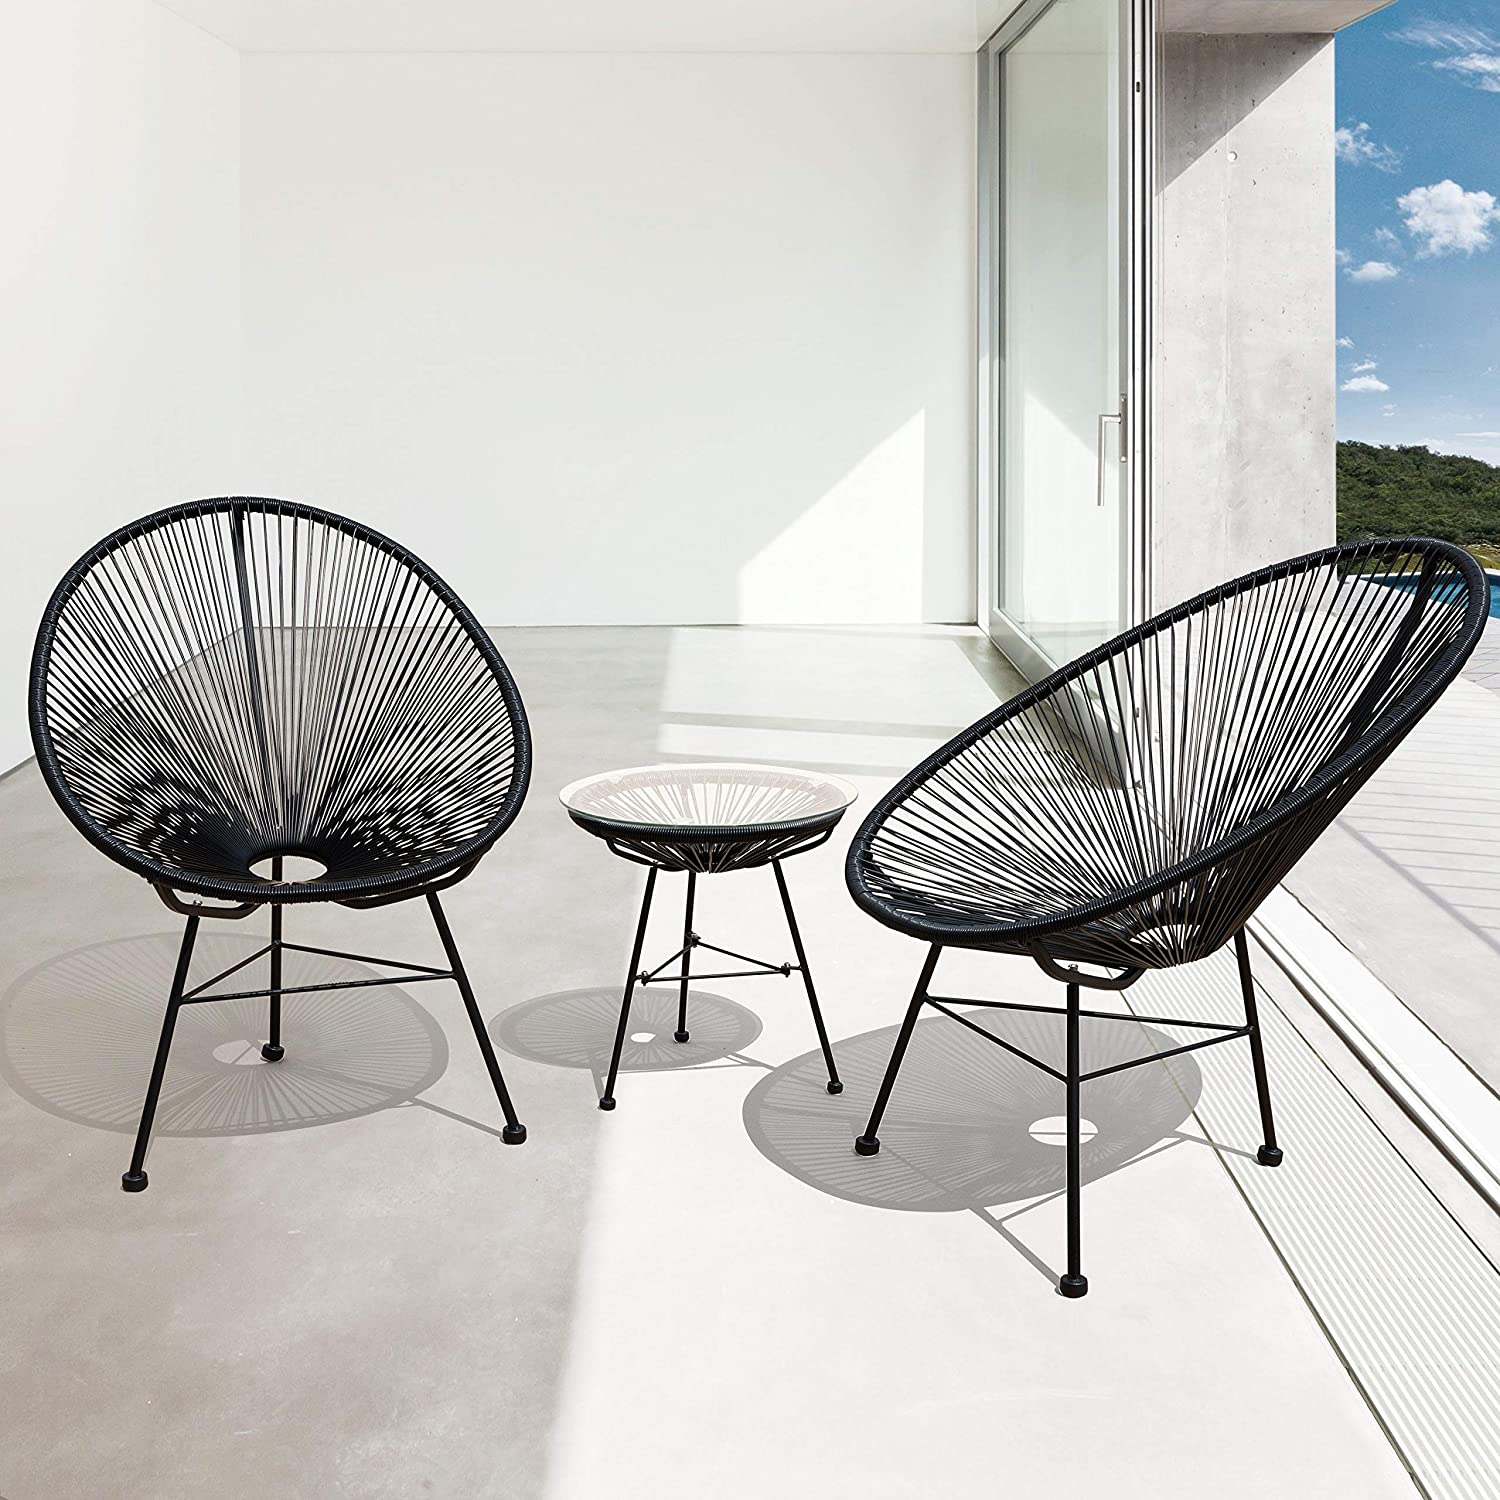 Corvus Sarcelles Modern Wicker Patio Chairs by Set of 2 – Black